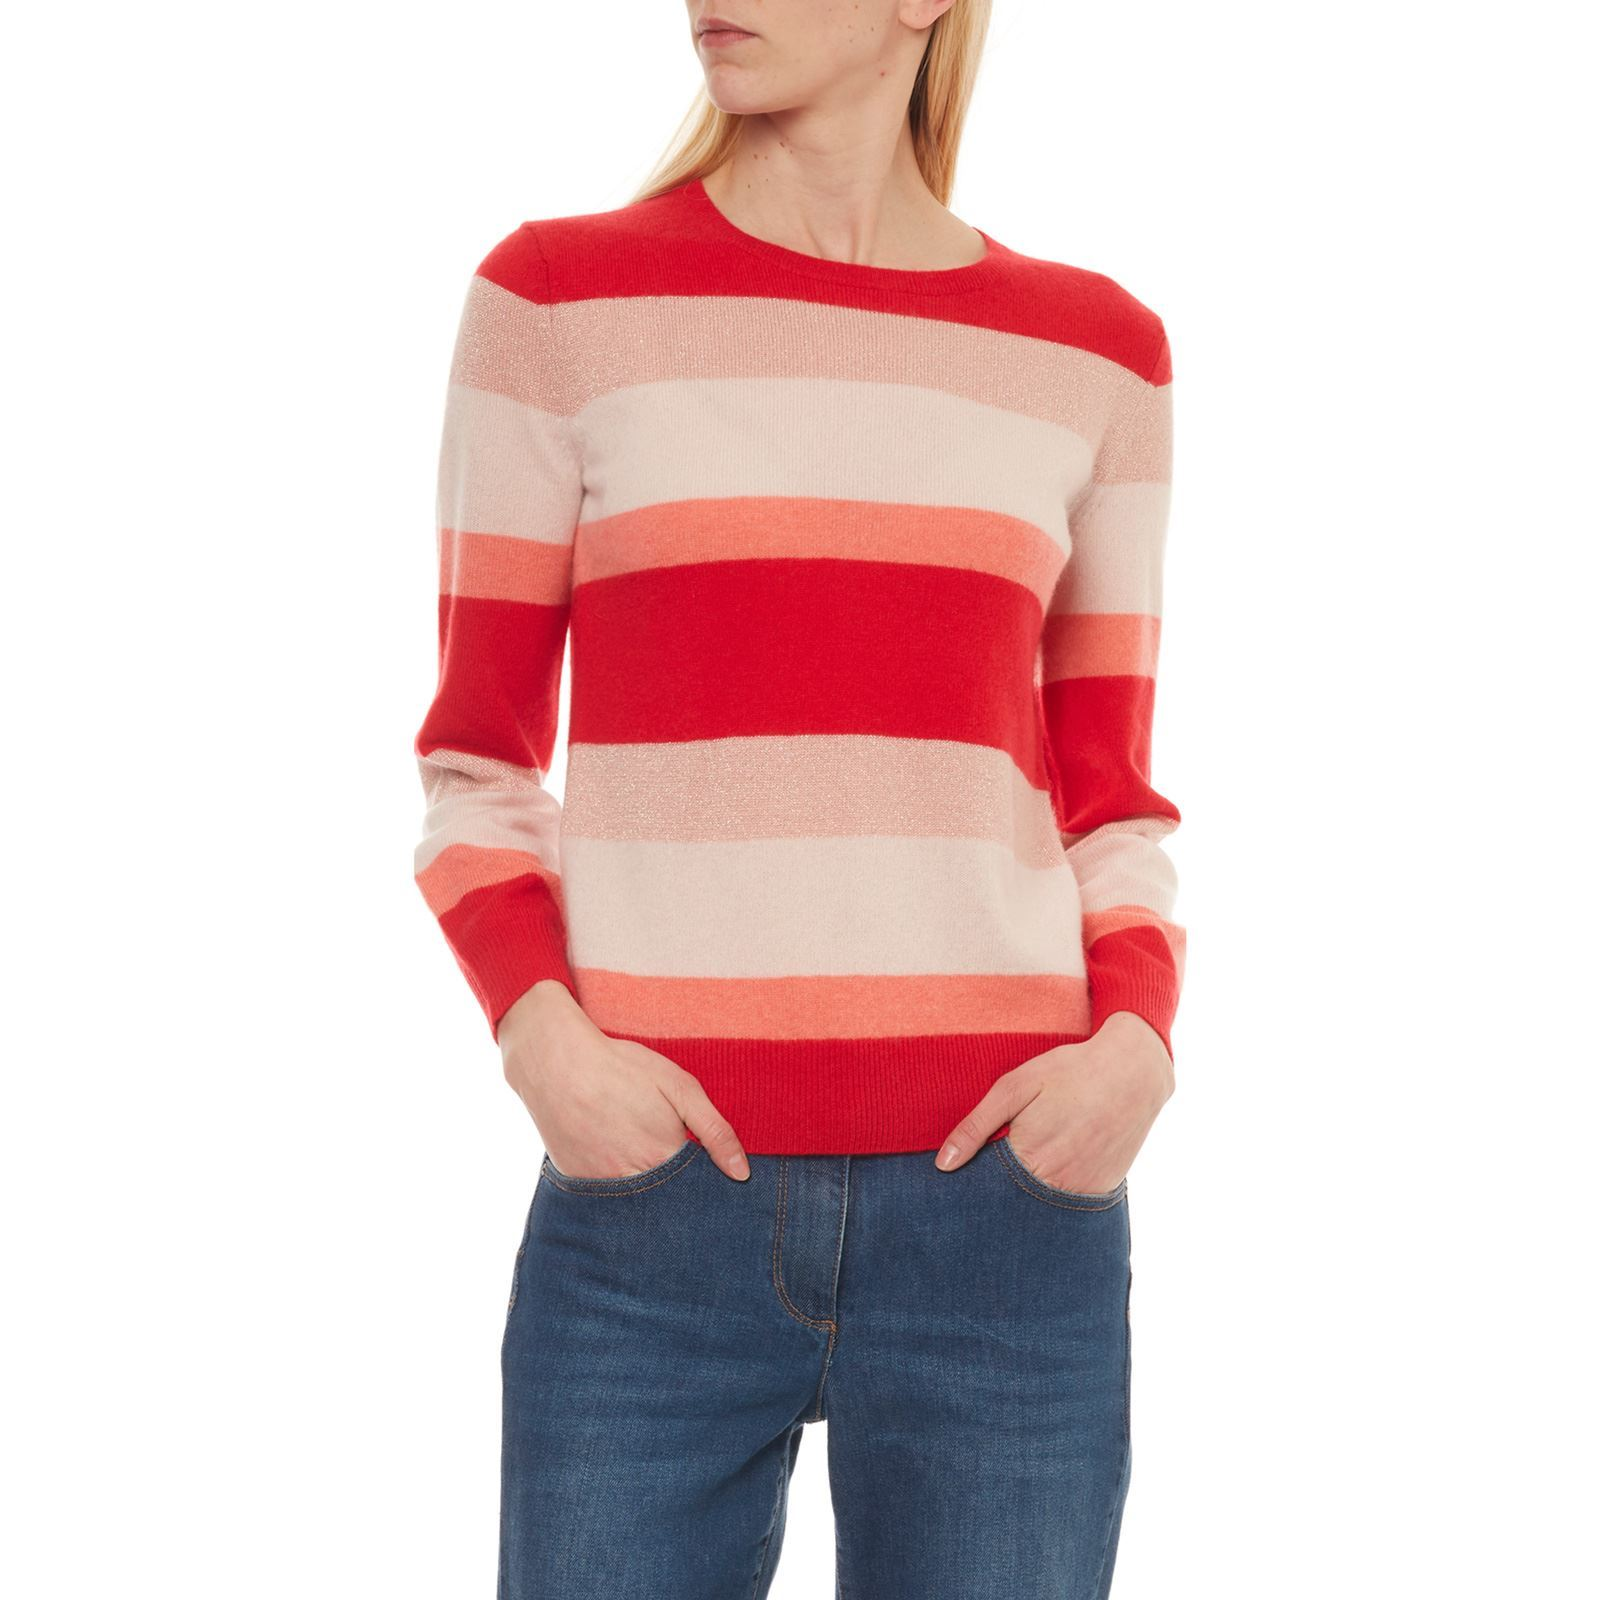 Caroll Juliette - Pull 97% cachemire - rouge   BrandAlley 081a13ae40b